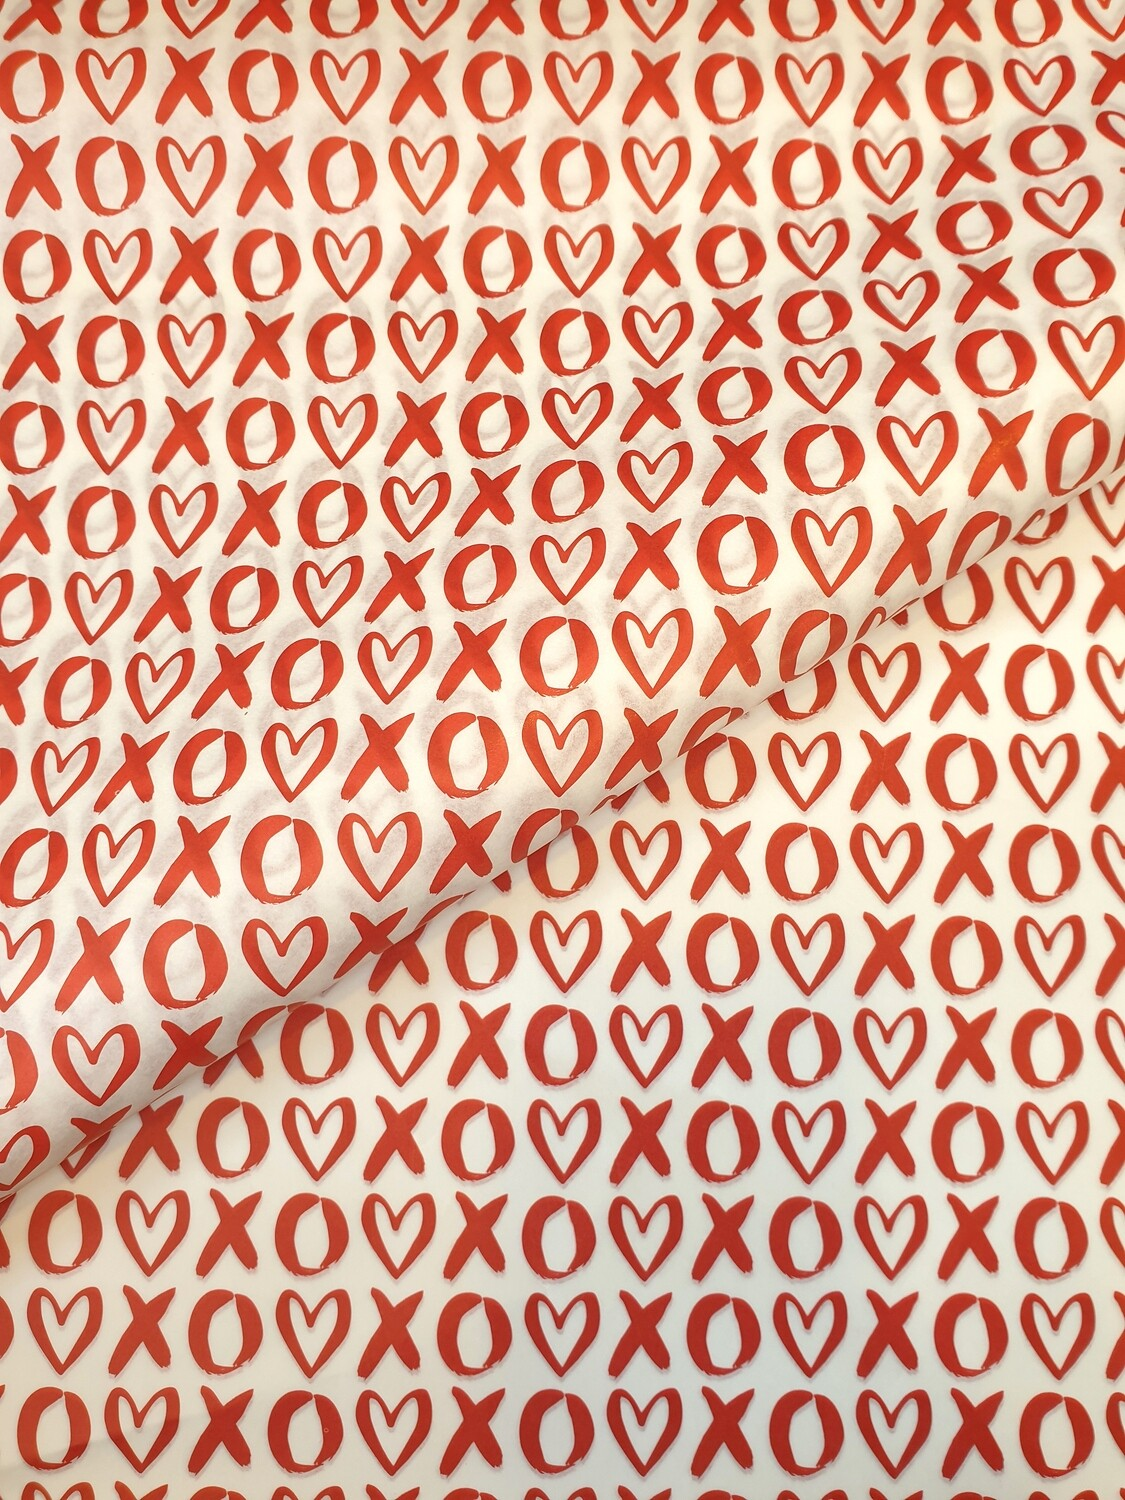 Tissue Paper - XOXO - Red on White (Qty 25)